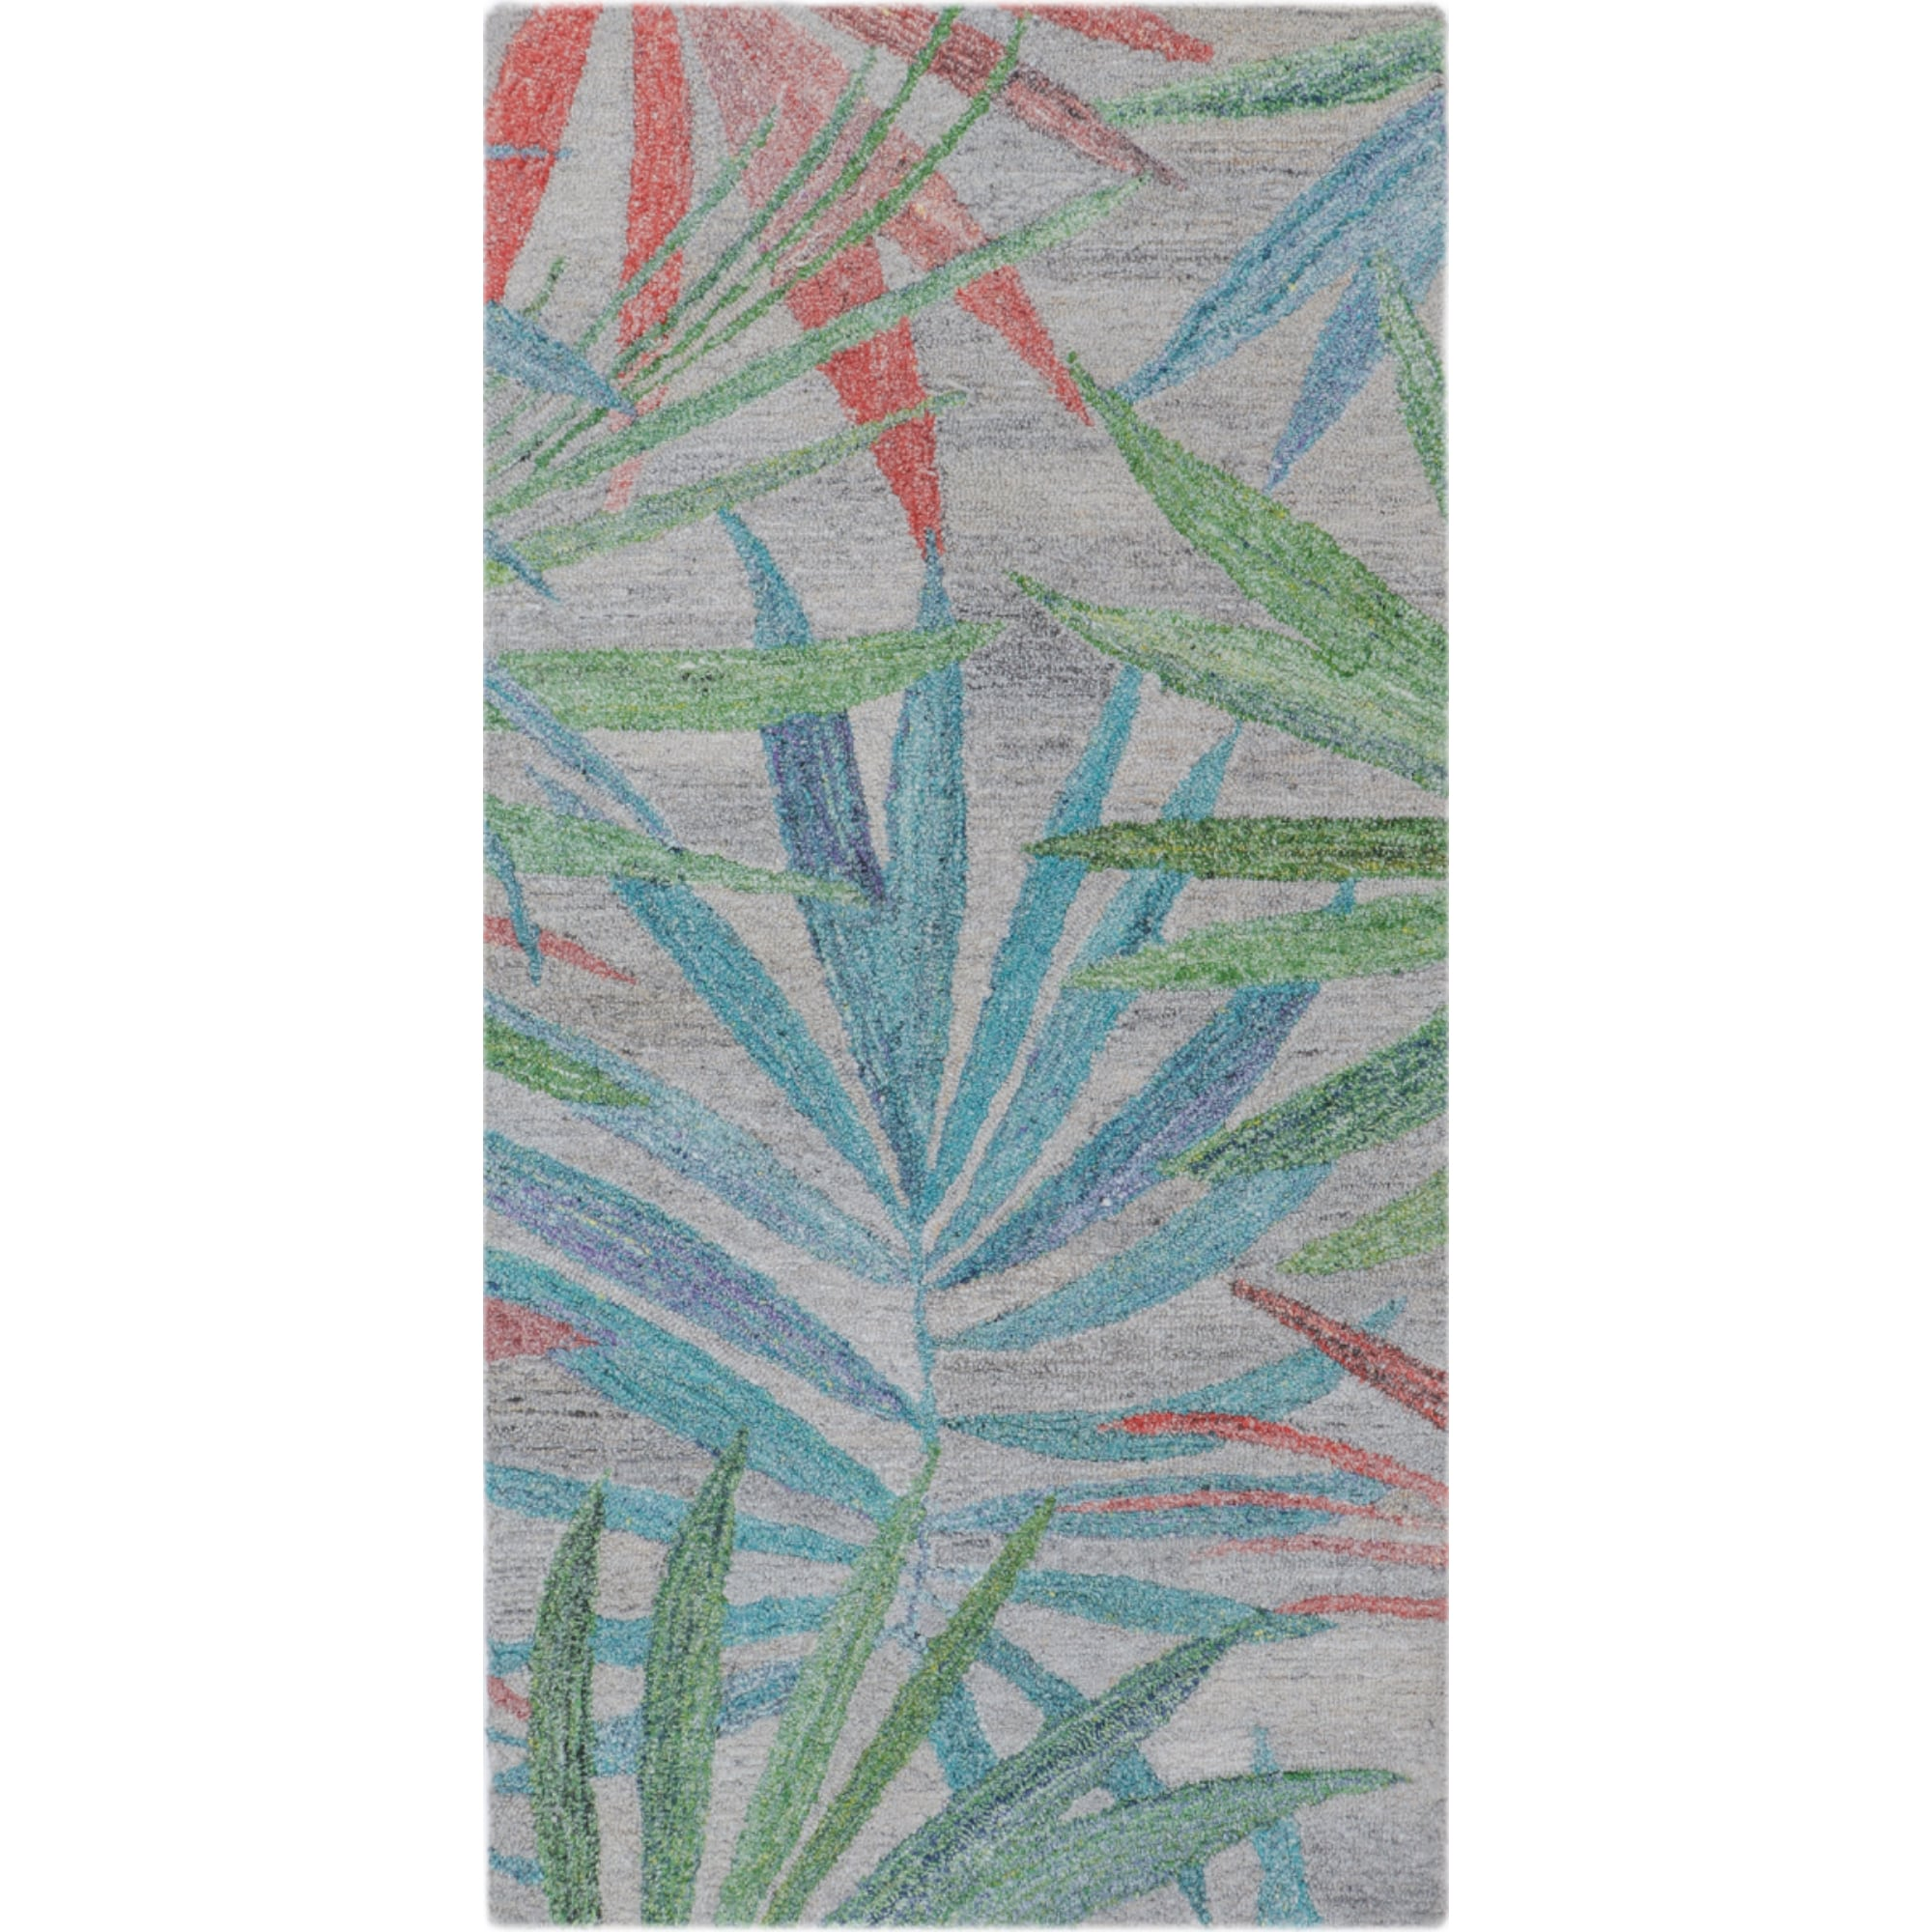 Palm Party Rug image 2